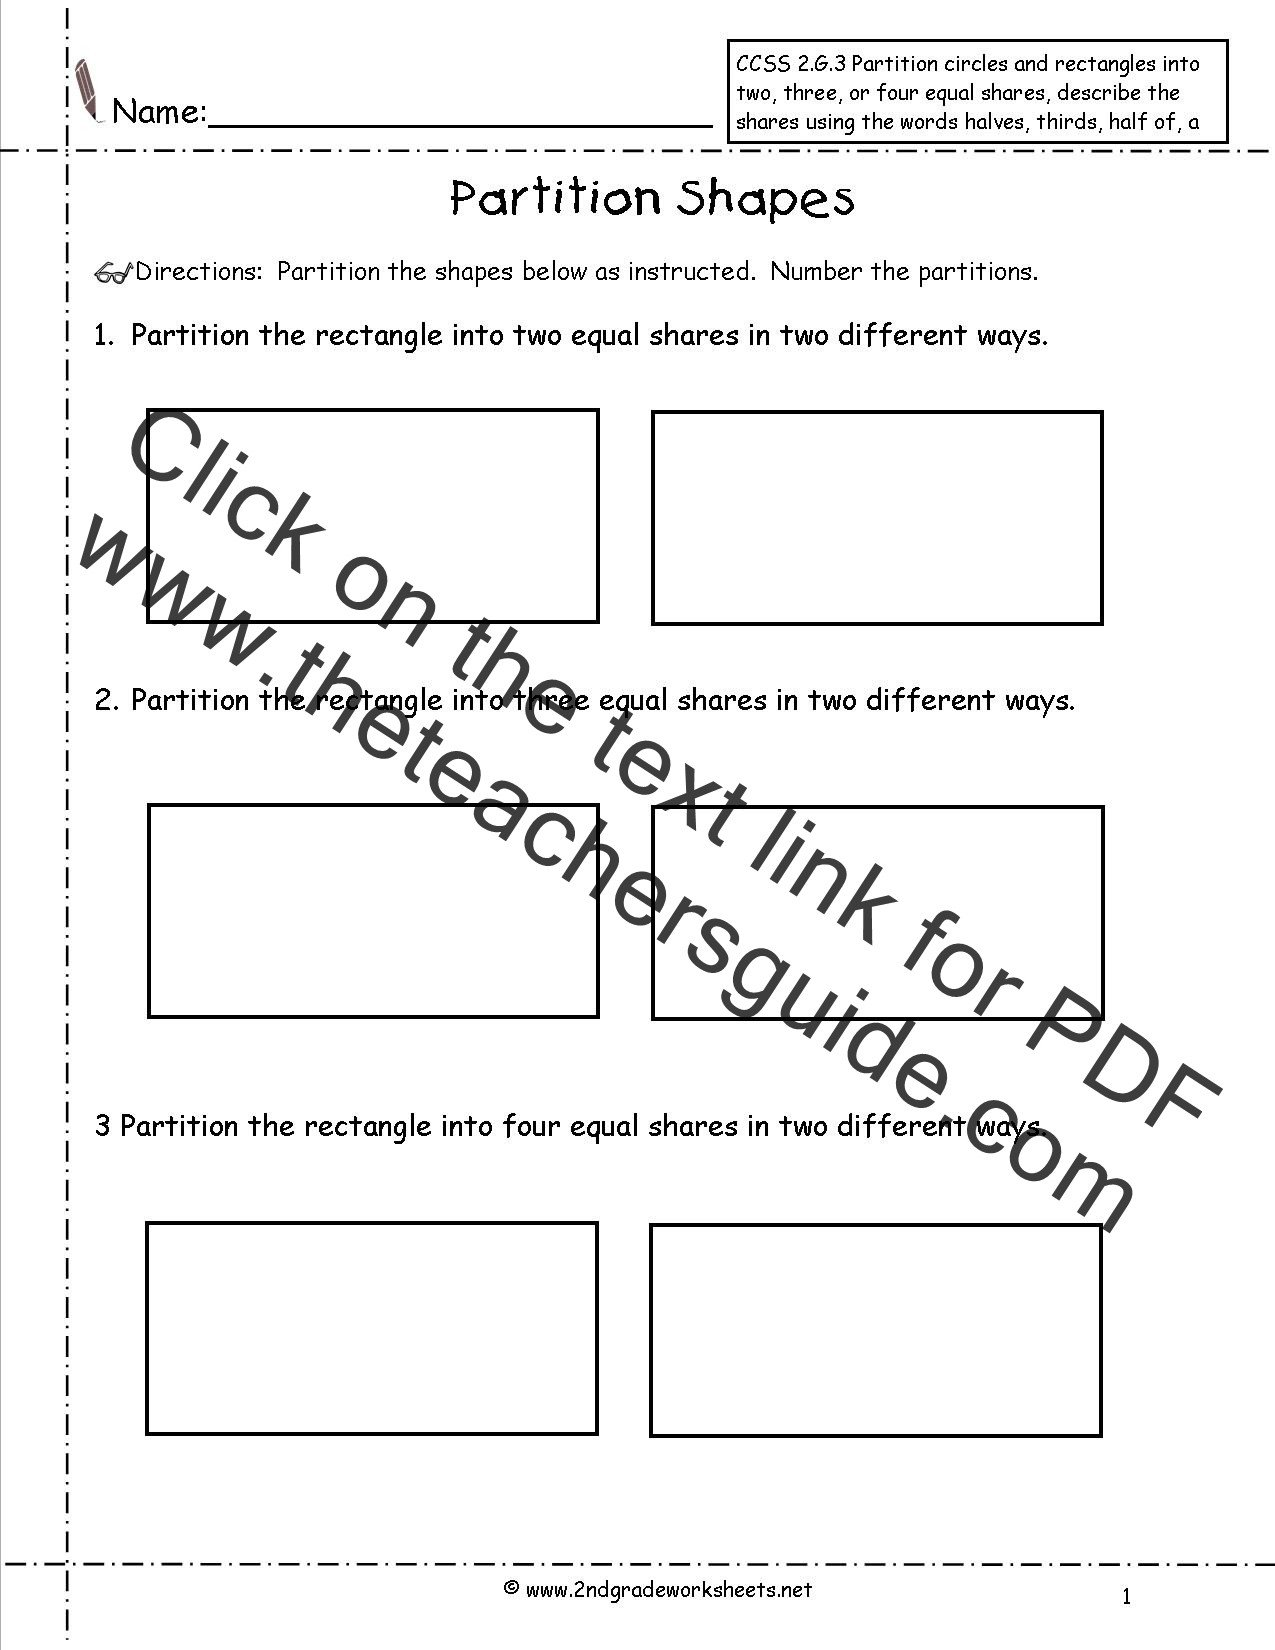 Halves Thirds Fourths Worksheets Ccss 2 G 3 Worksheets Partition Shapes